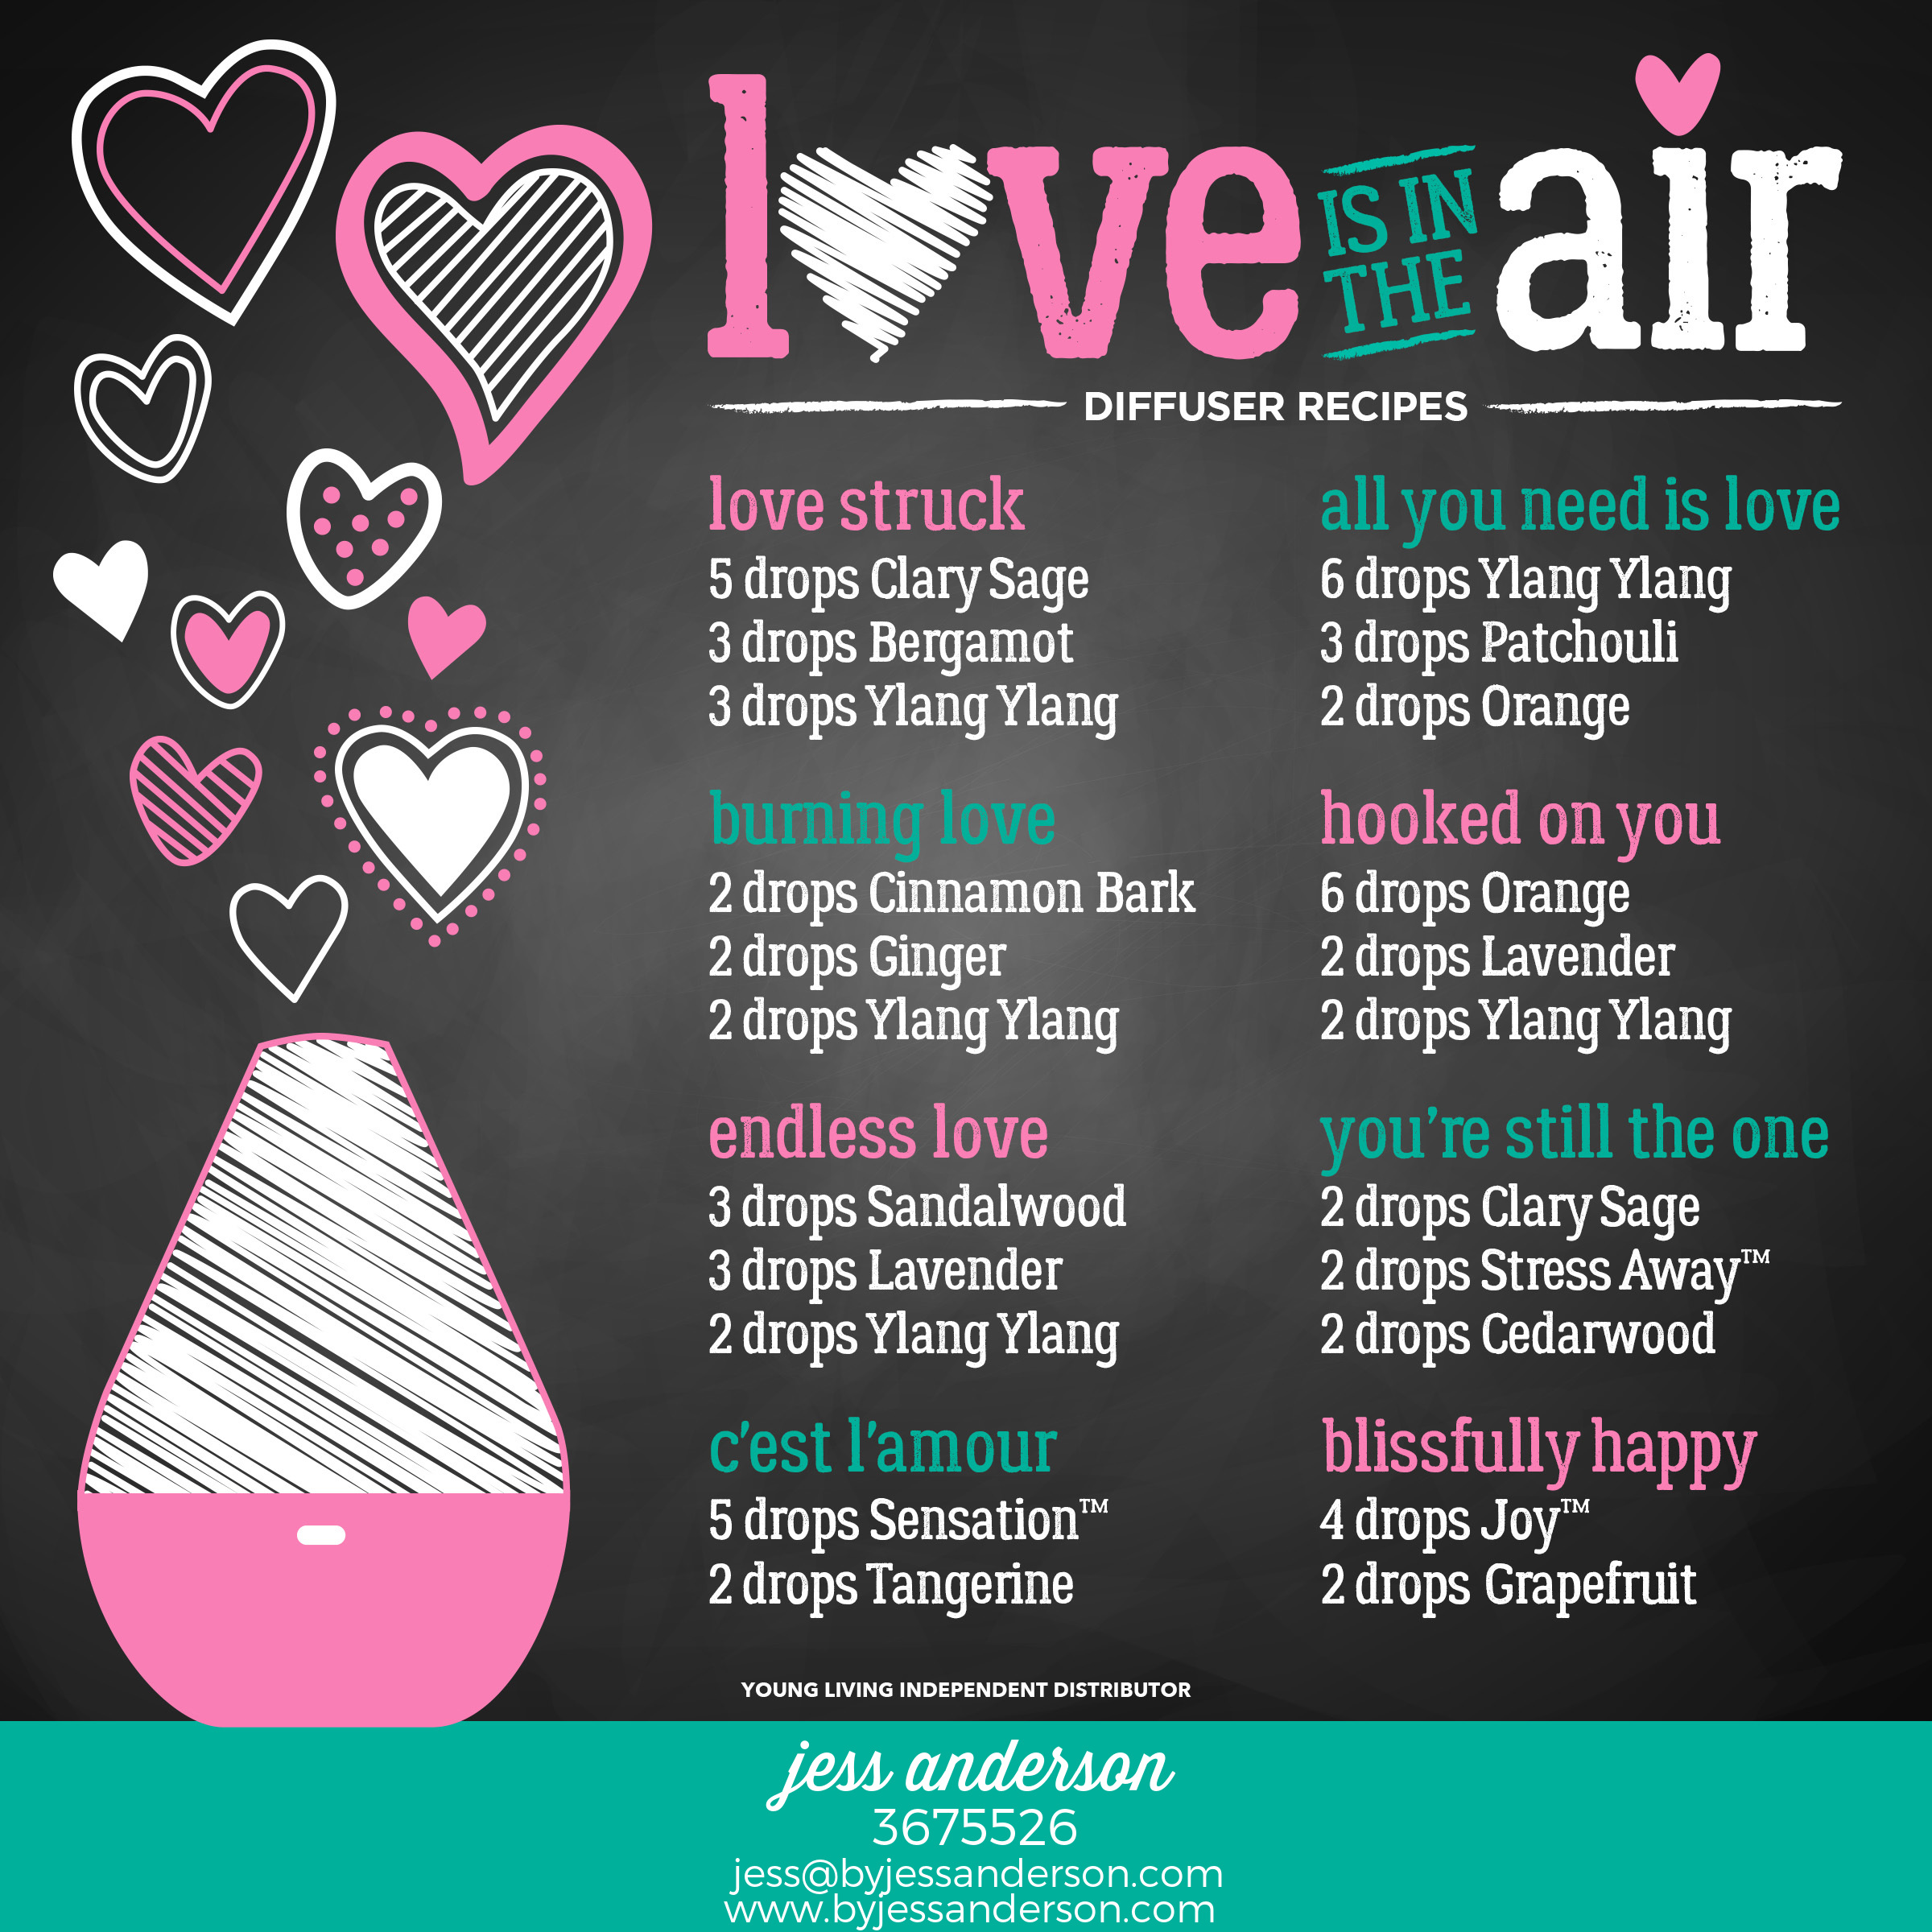 Love is in the Air - Diffuser recipes using Young Living essential oils